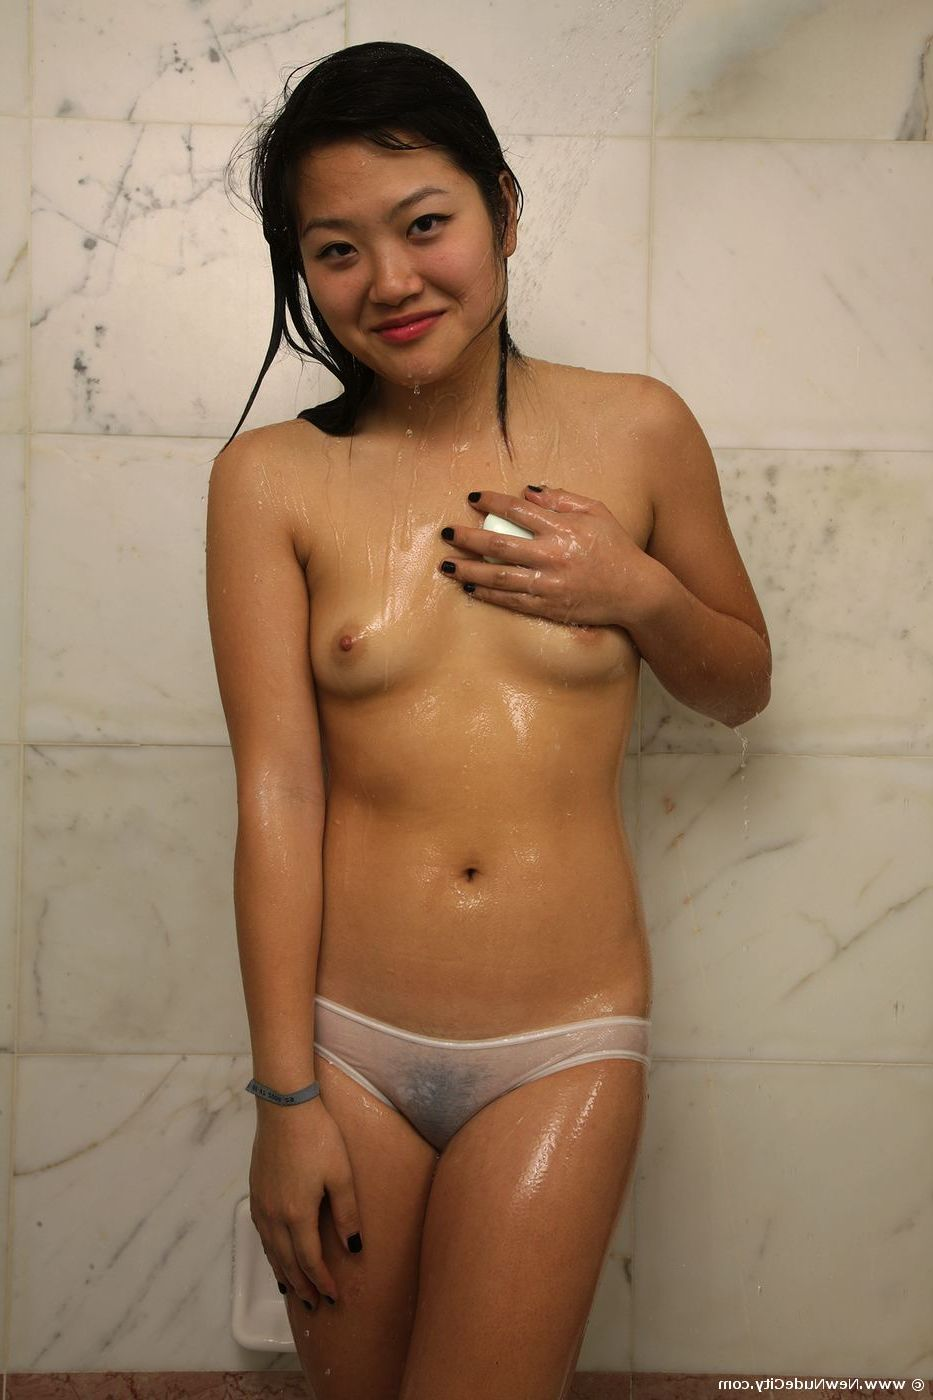 hot asian girls naked in shower